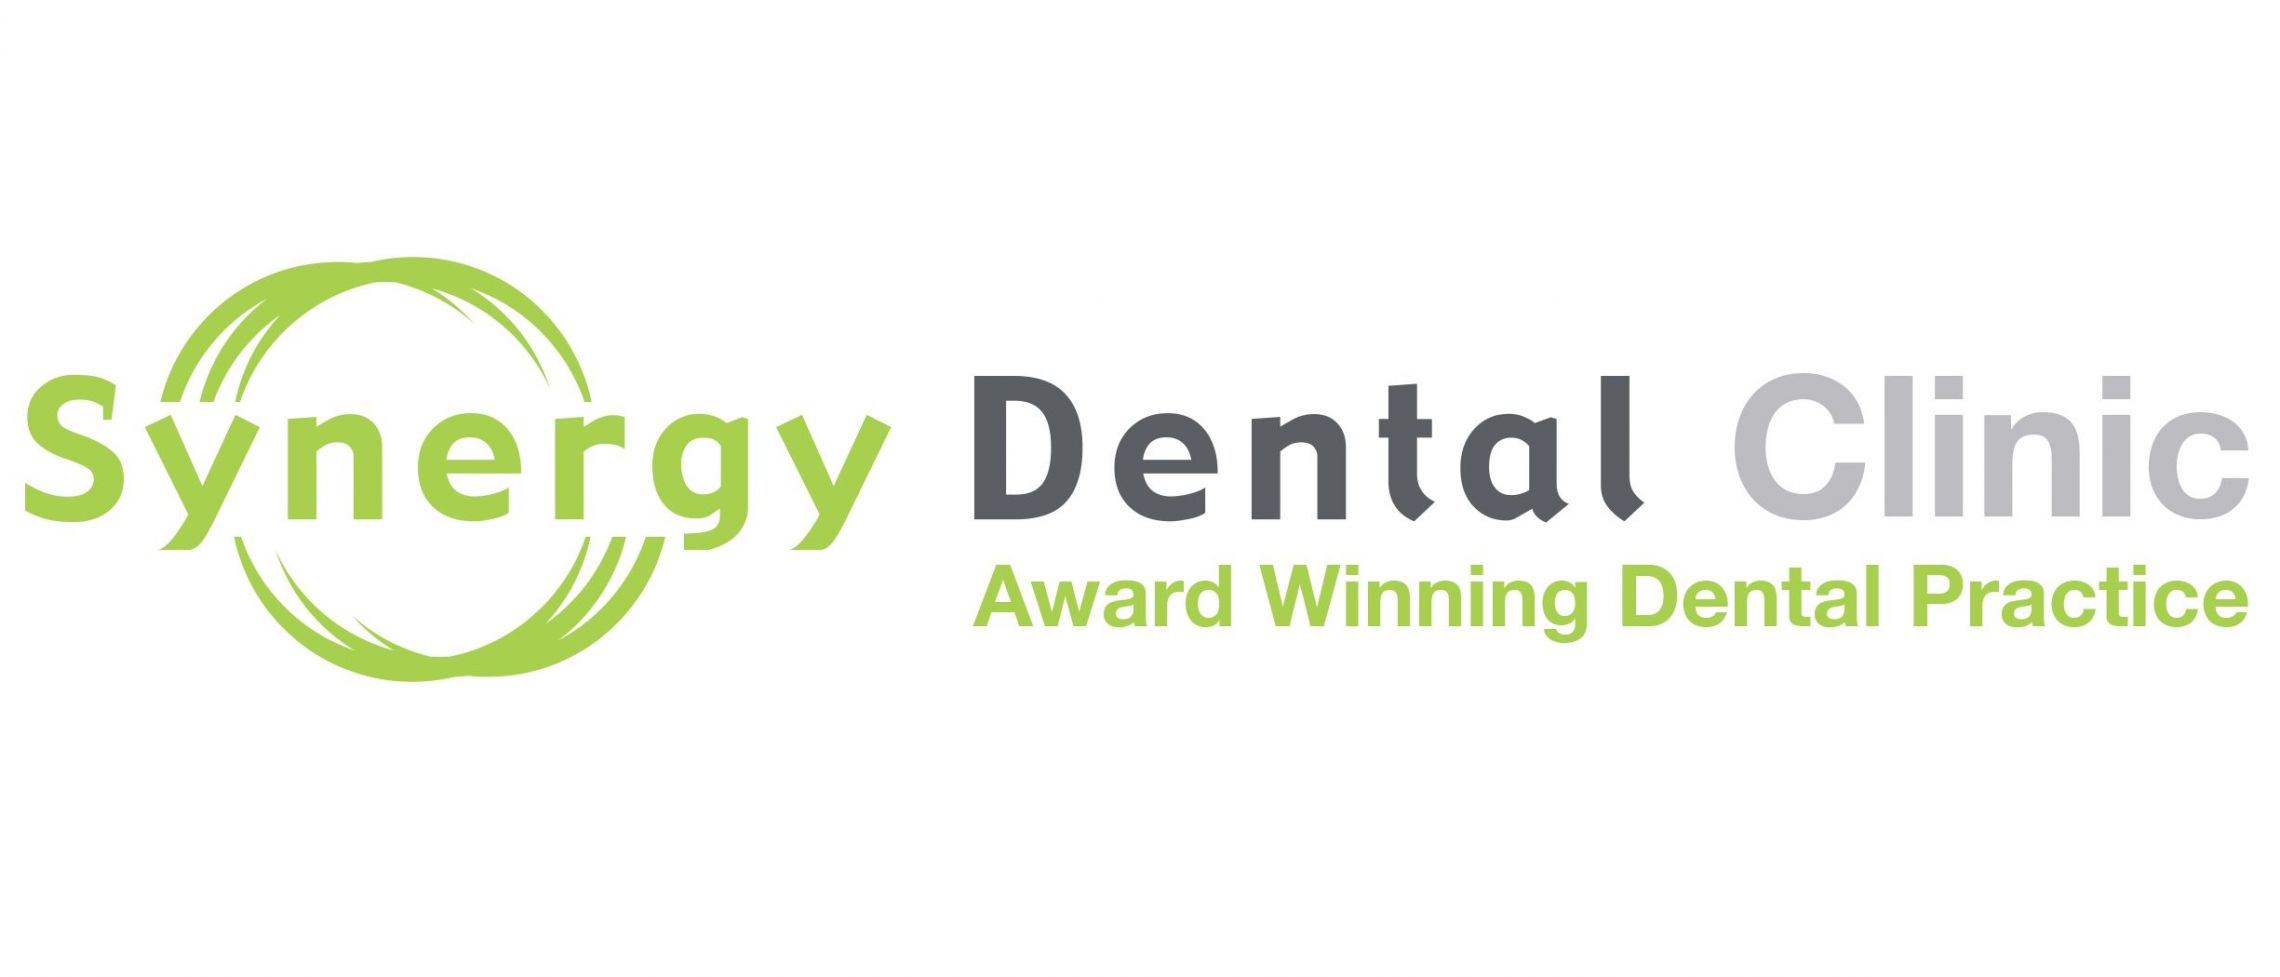 Synergy Dental Clinic Bury